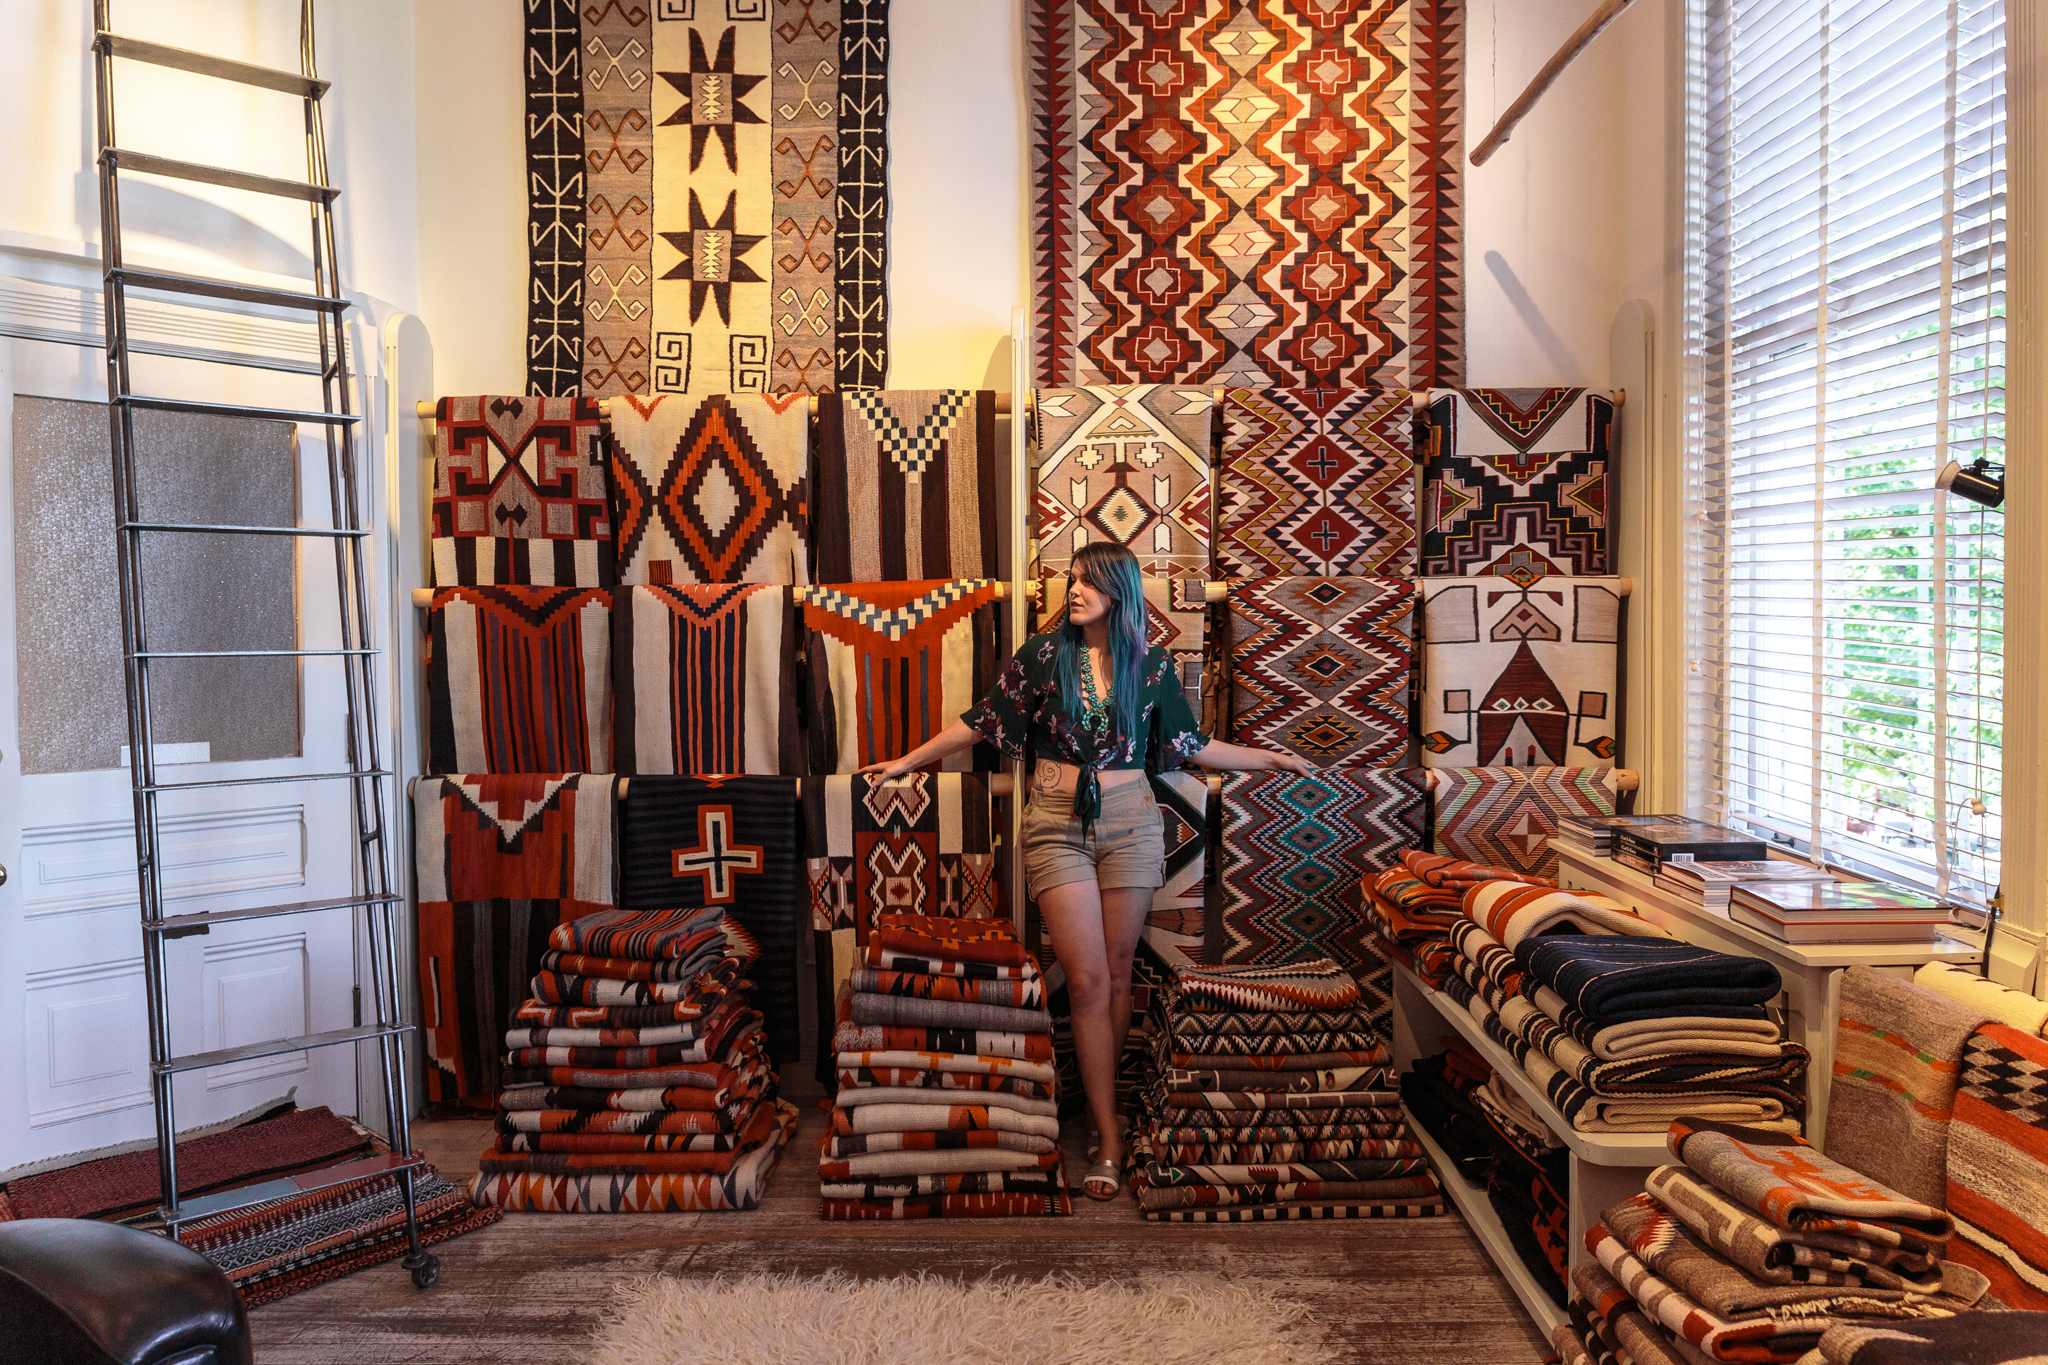 High End Rugs 10 Fun Insta-worthy Activities To Do In Santa Fe | Ready